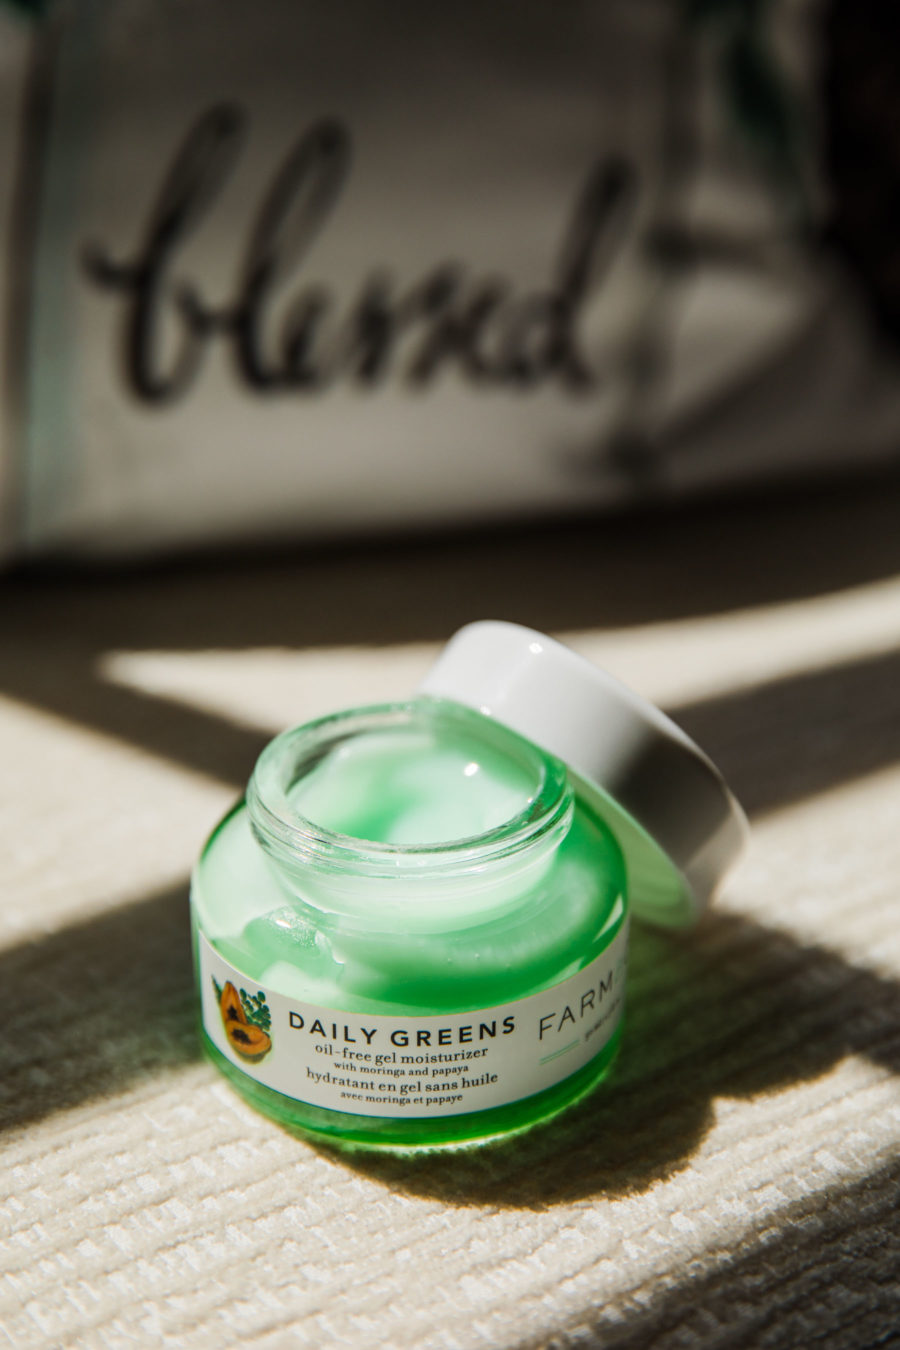 farmacy daily greens clean moisturizer review // Jessica Wang - Notjessfashion